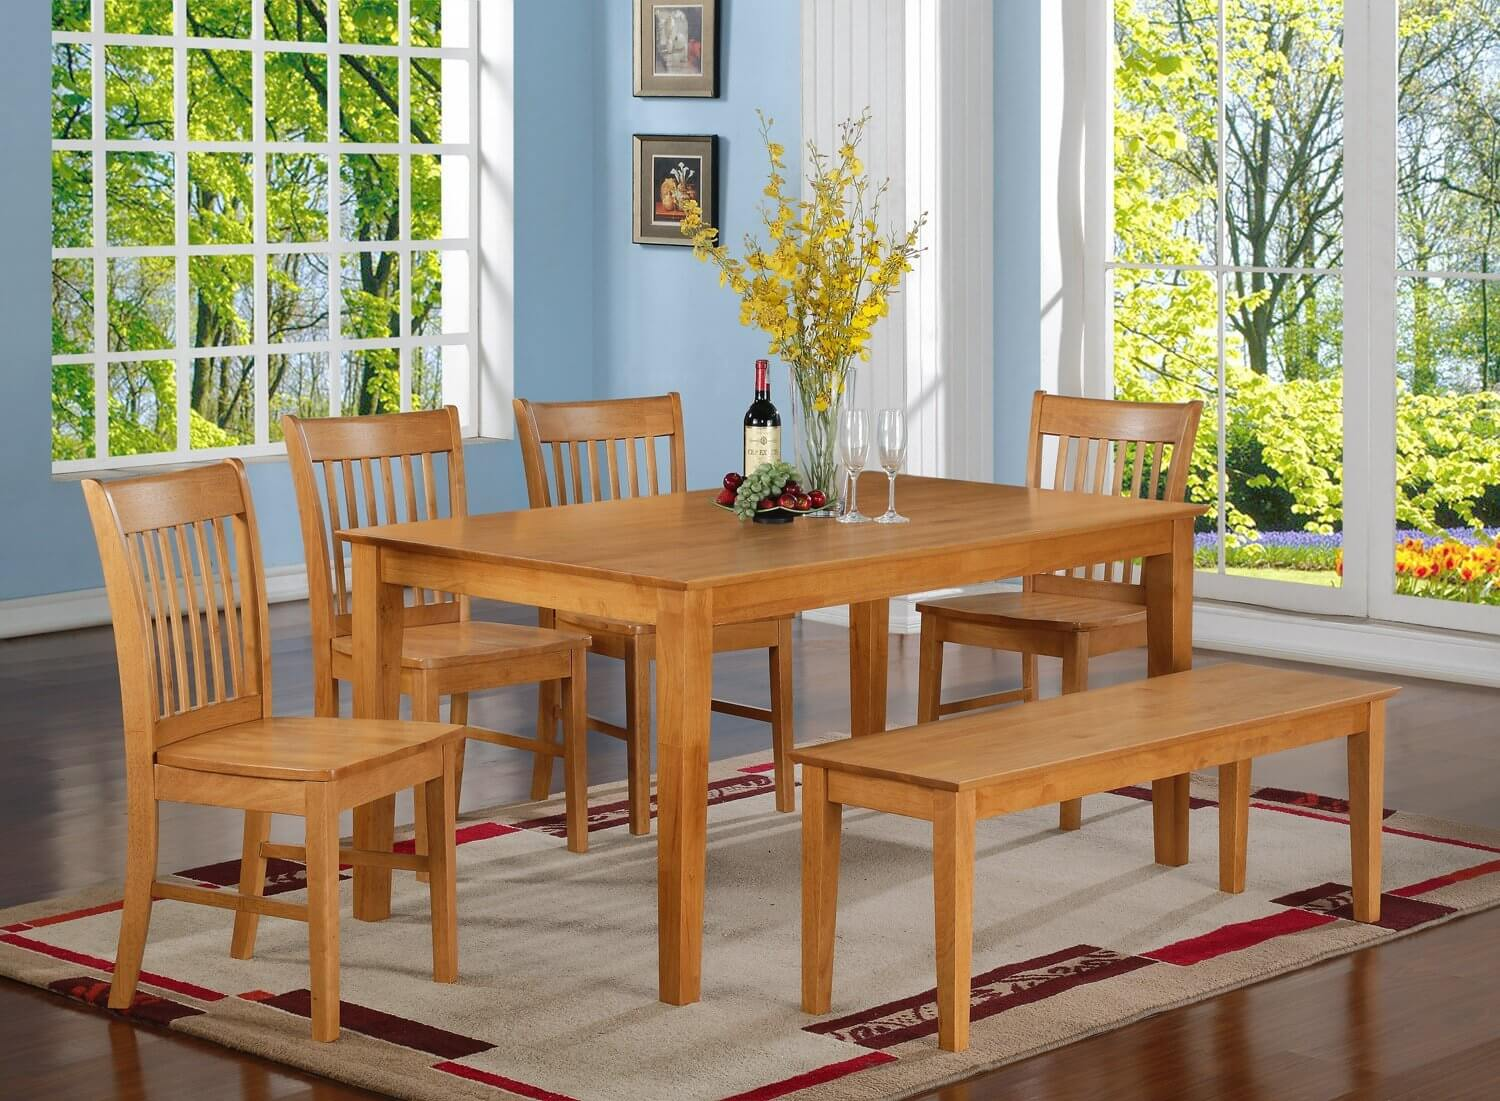 dining room sets bench seating solid wood kitchen tables Oak finish six piece bench style dining room set with large rectangle table It s